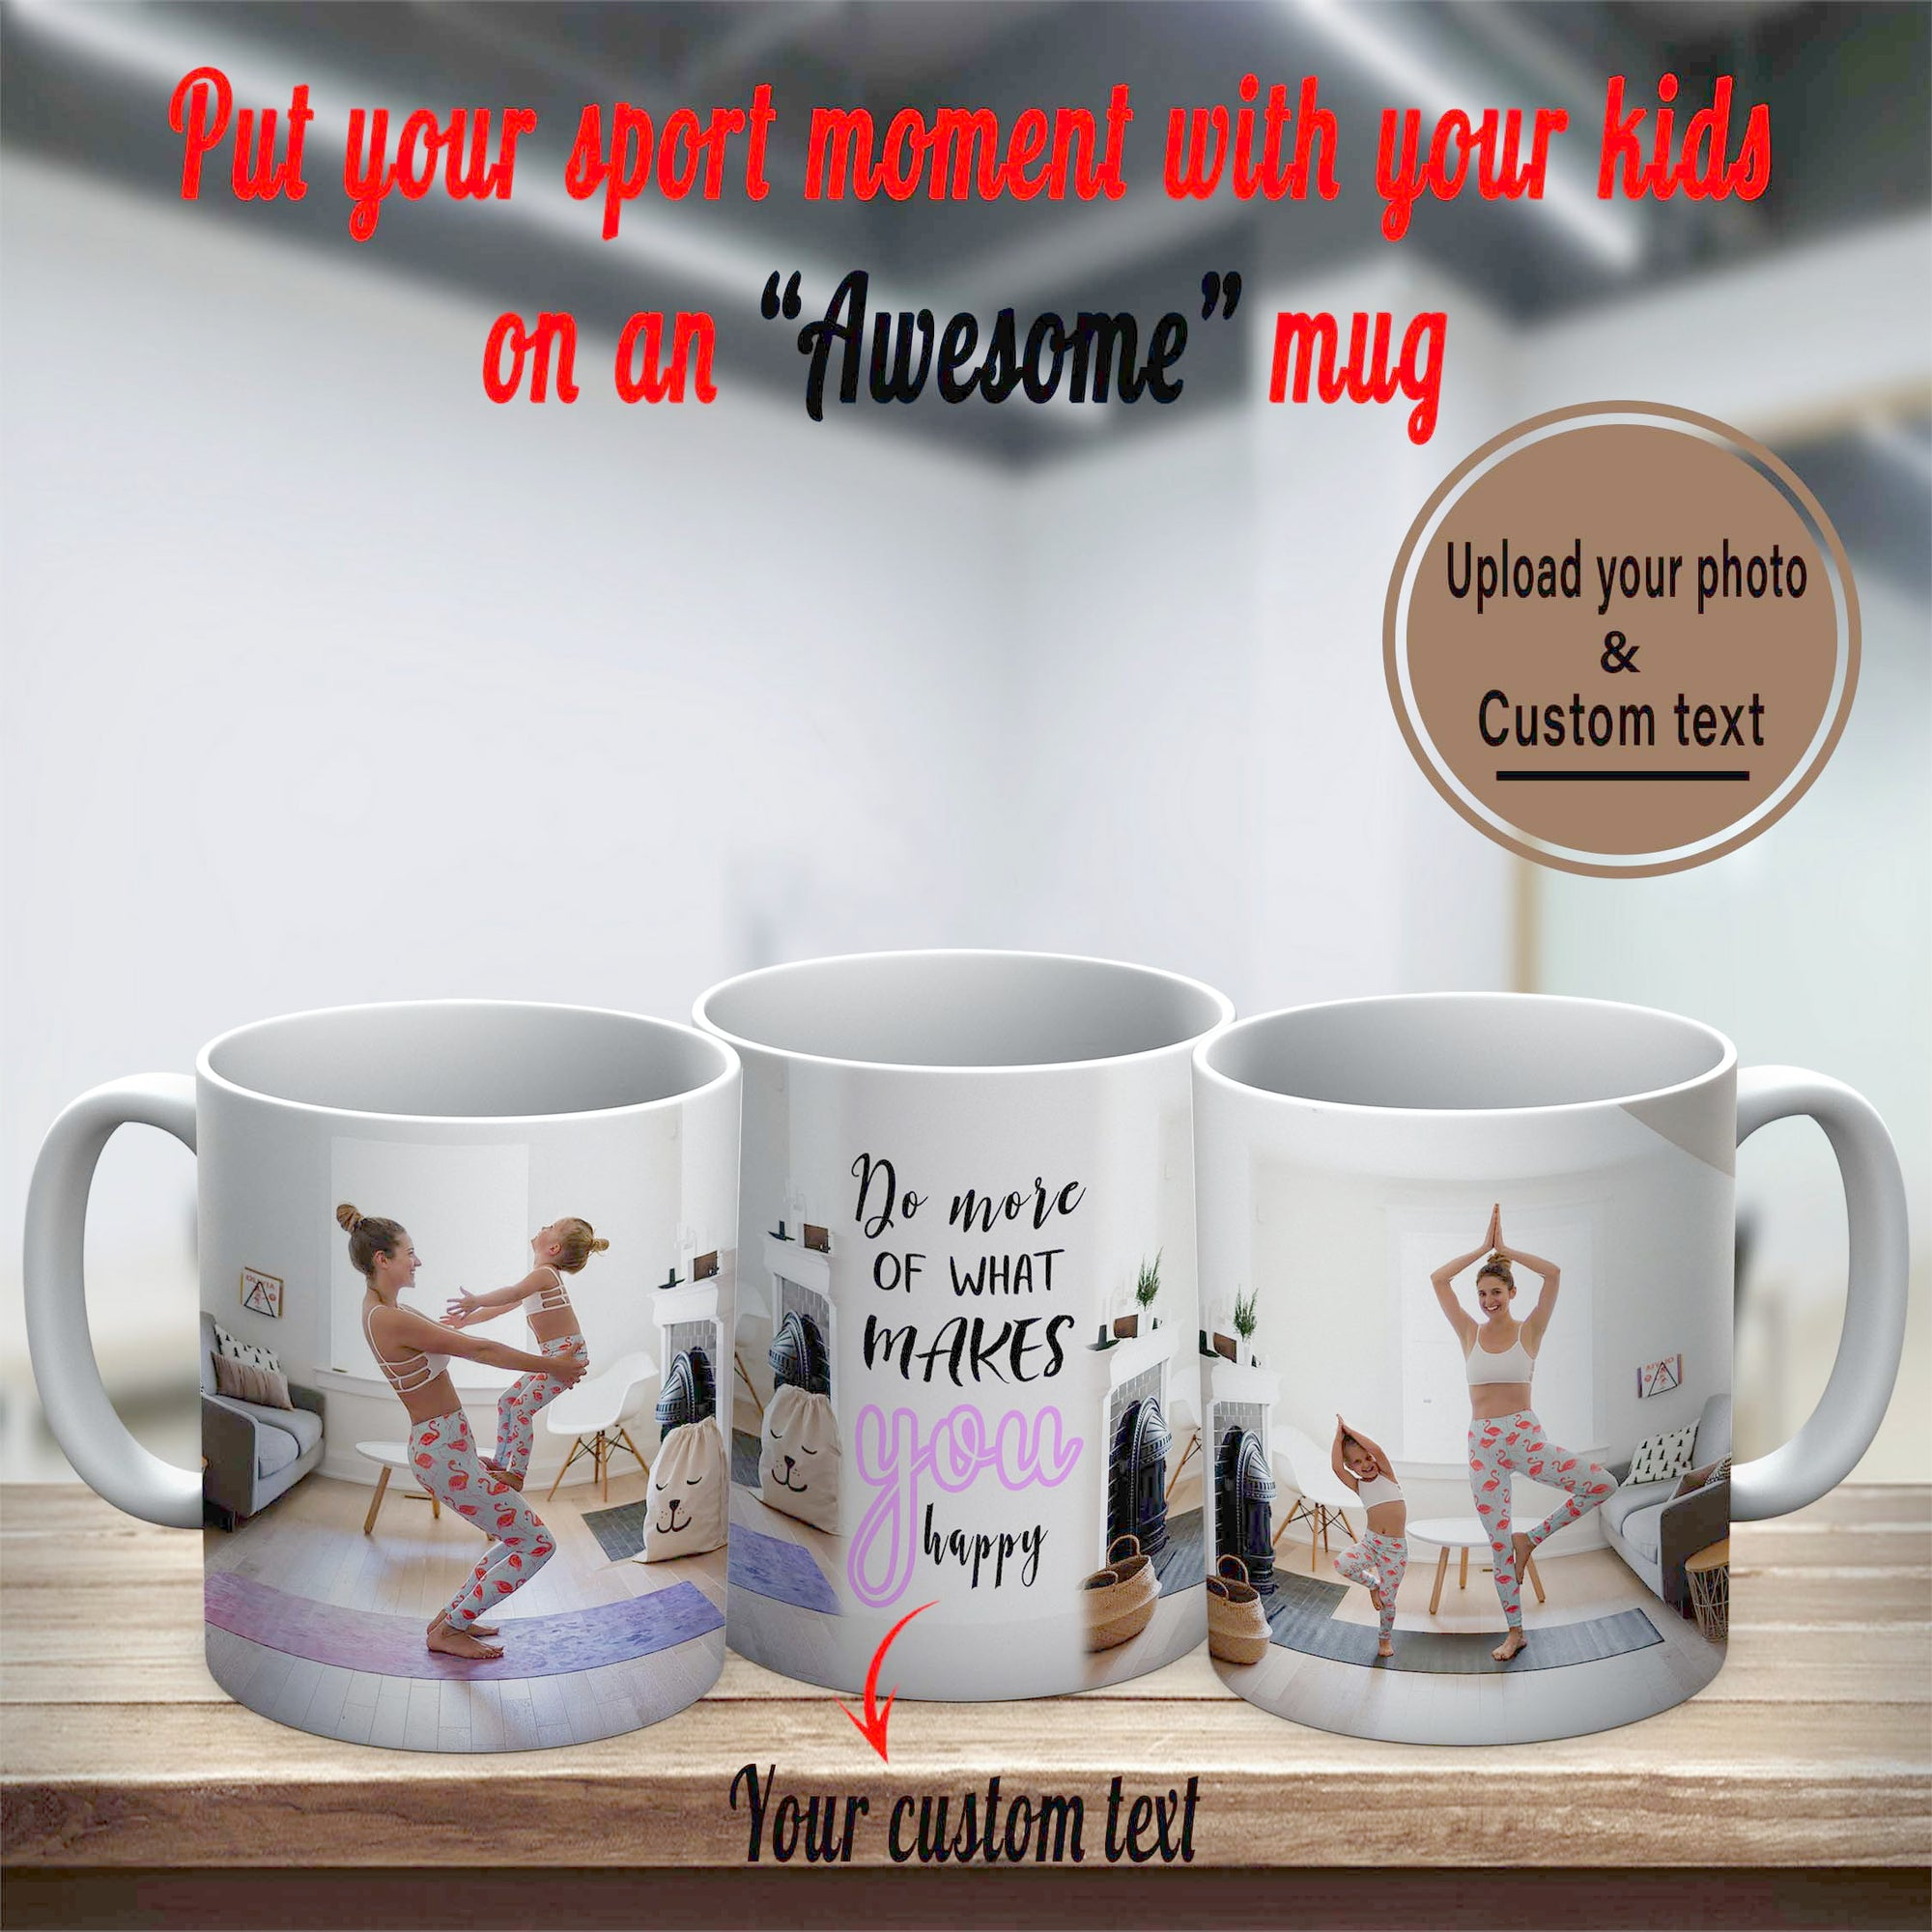 PERSONALIZED MUG - UPLOAD YOUR SPORT MOMENTS WITH YOUR KIDS